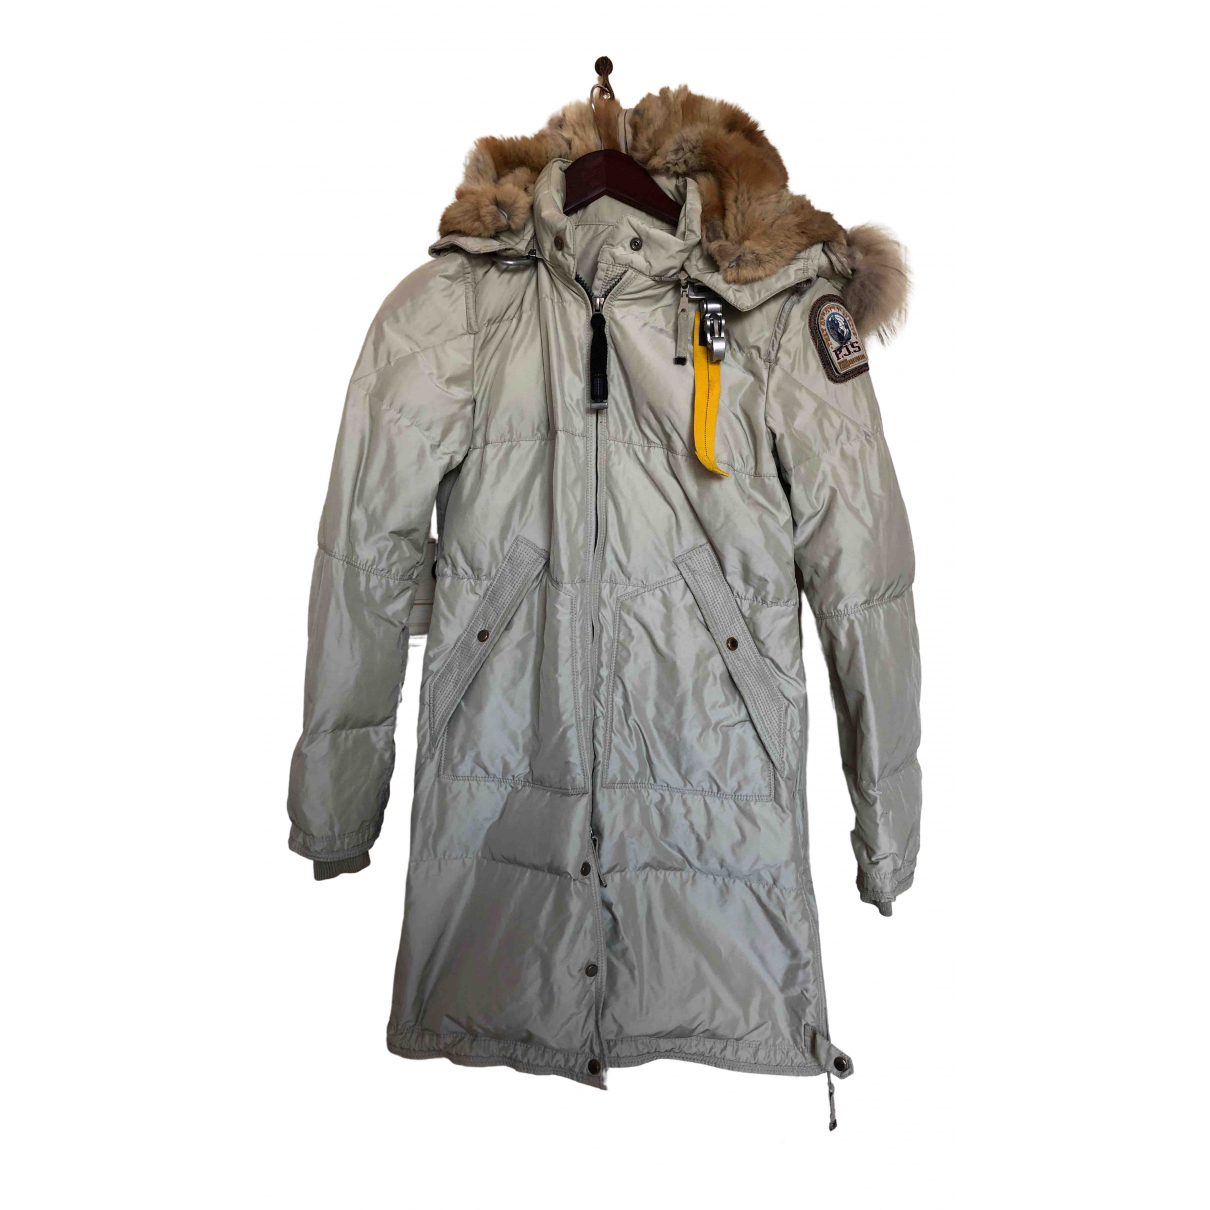 Parajumpers \N Beige coat for Women XS International